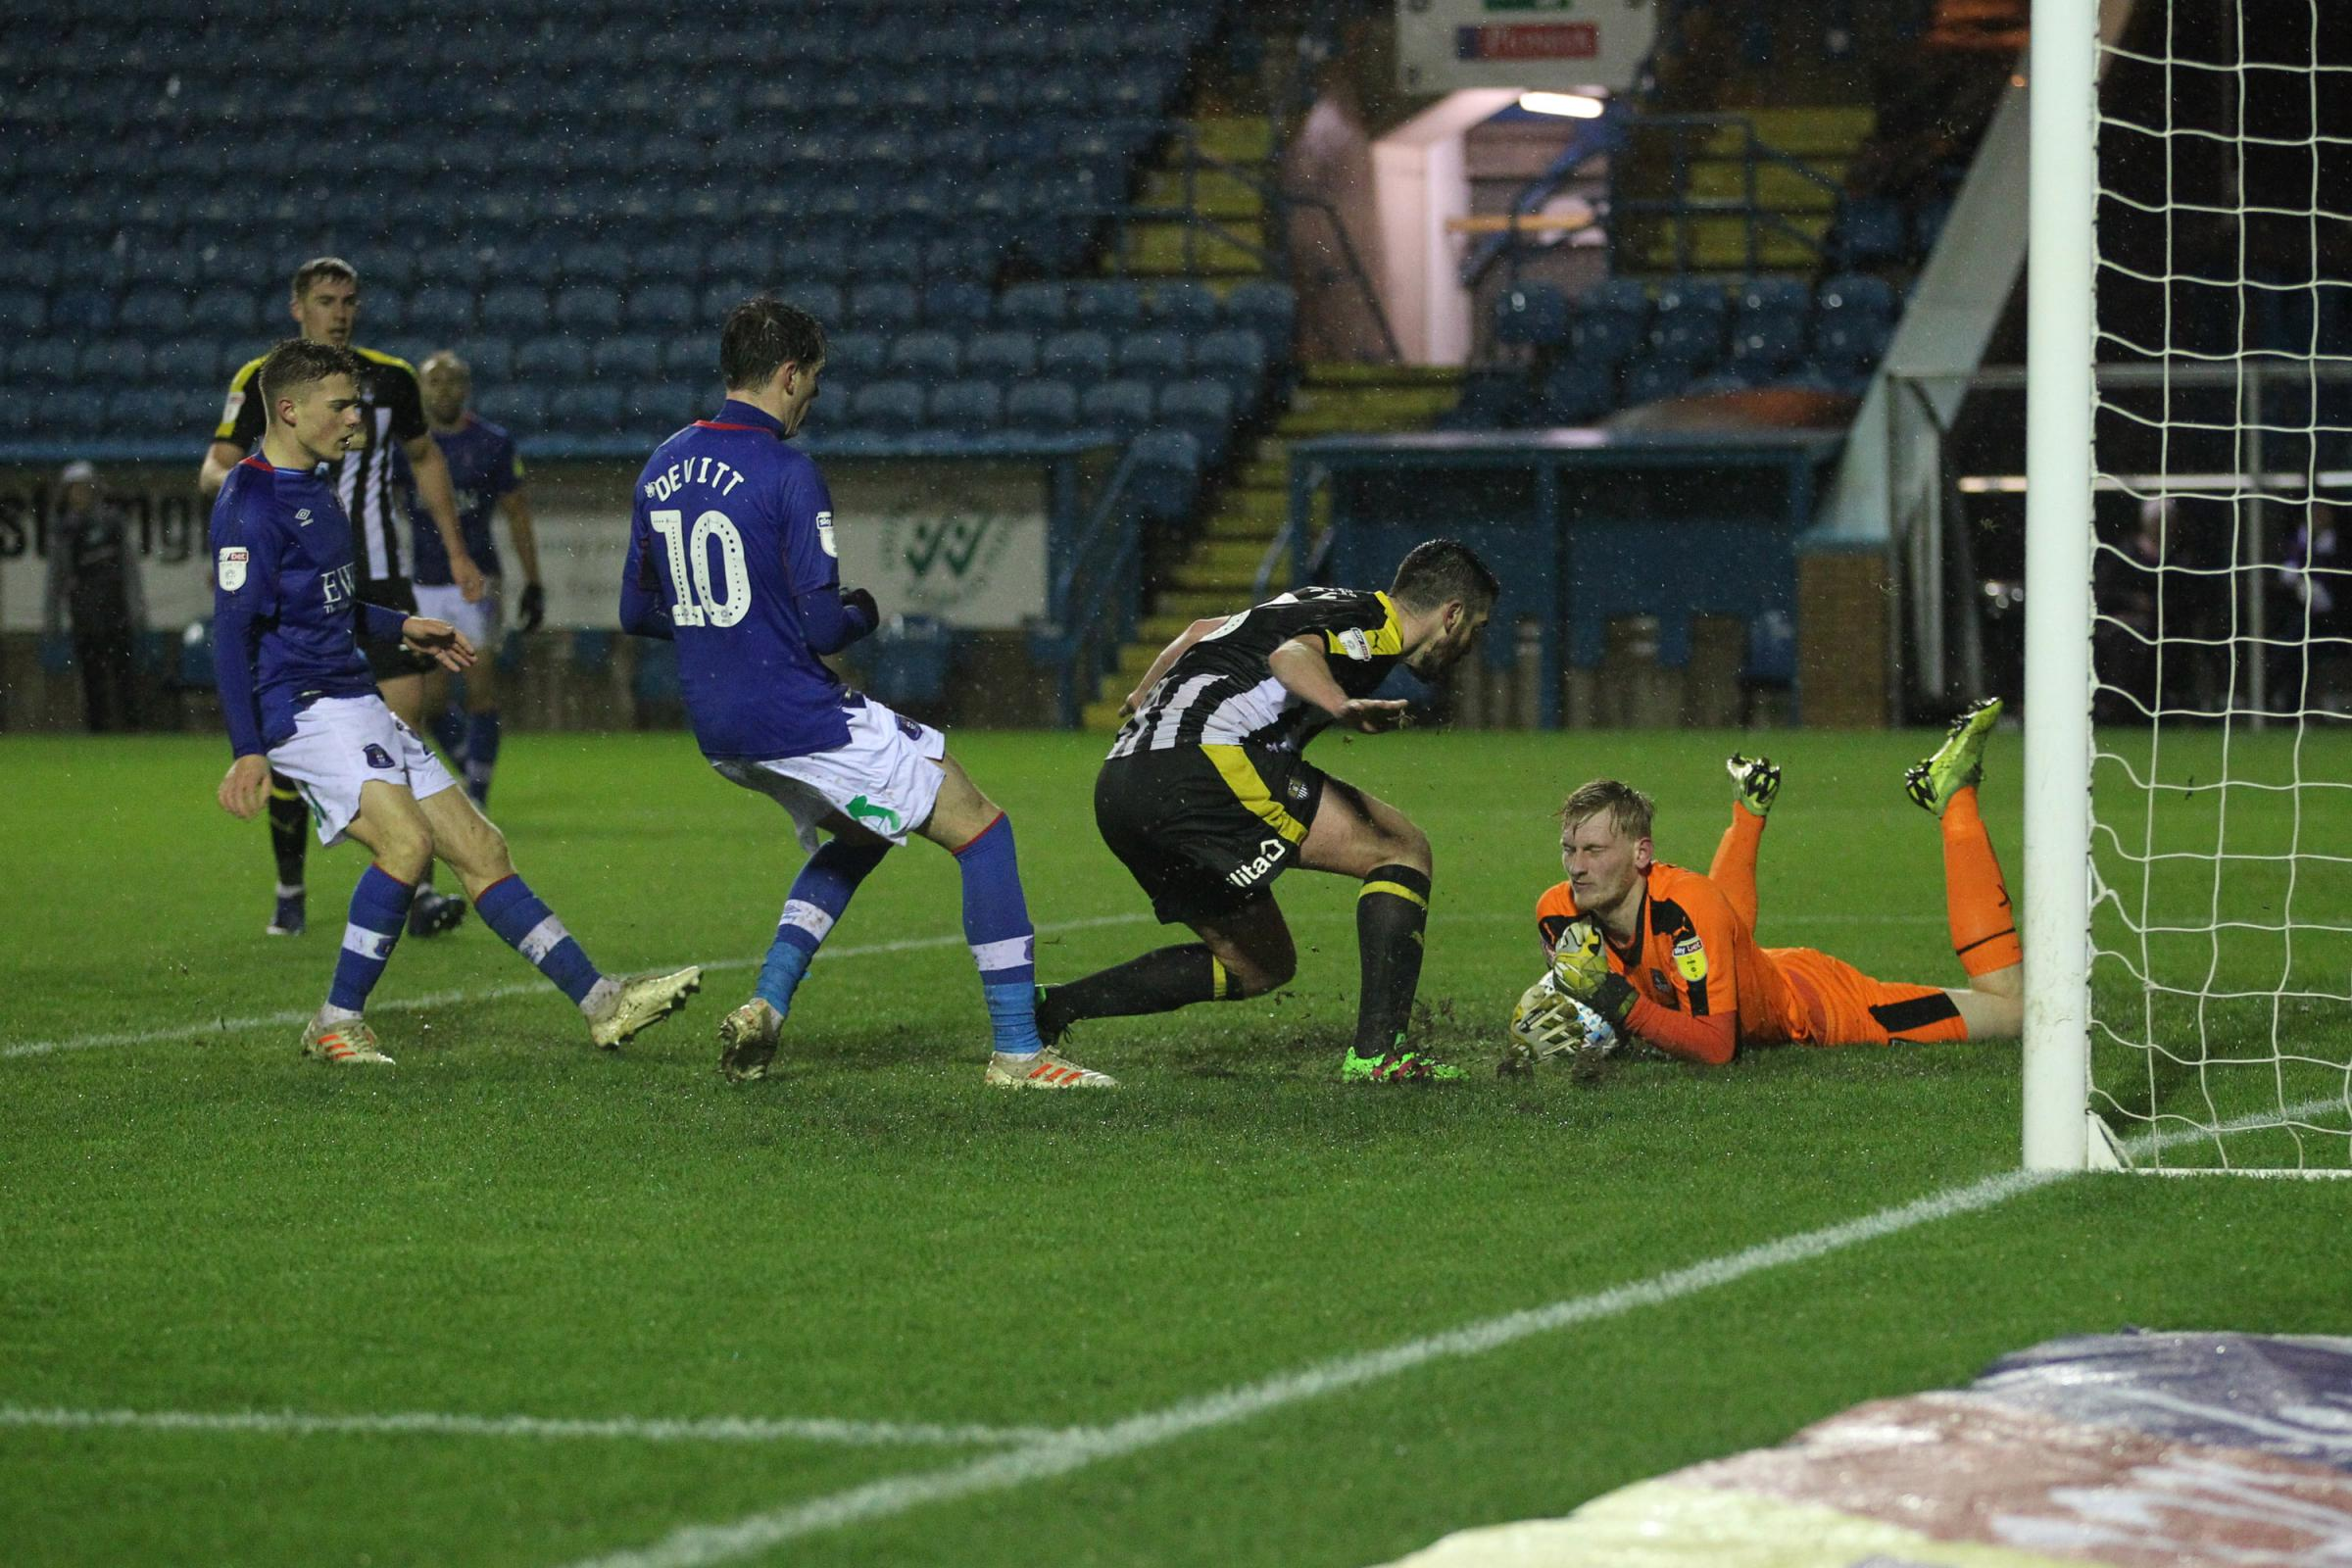 Notts' keeper Ryan Schofield pounces on the ball against Carlisle (photo: Barbara Abbott)